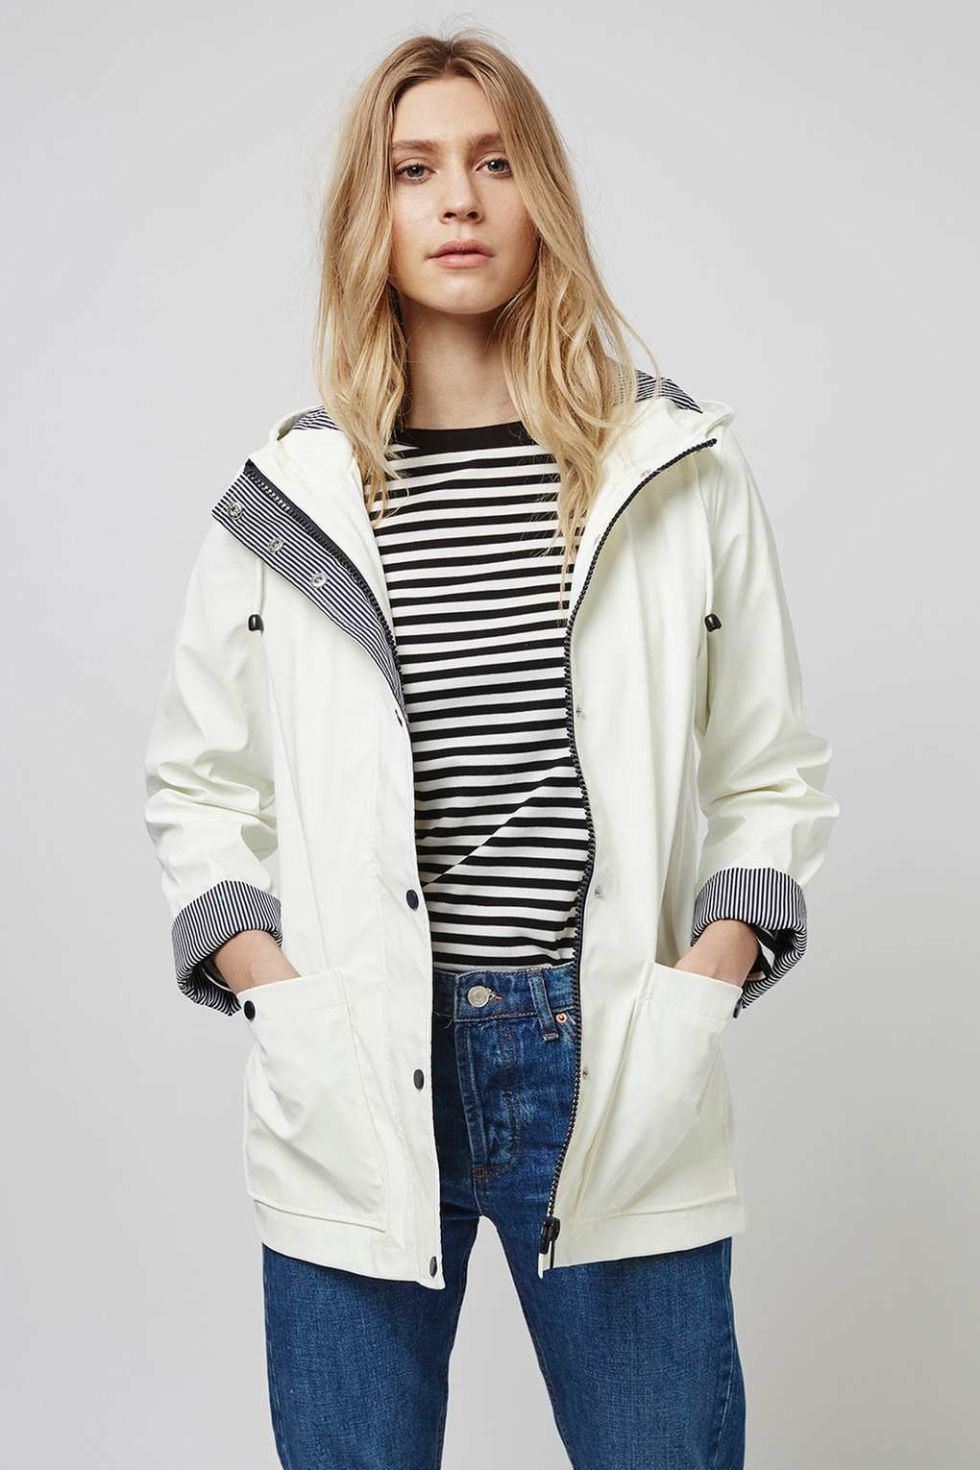 13 Raincoats Thatll Make You Feel Pretty Even When the Weather Stinks picture